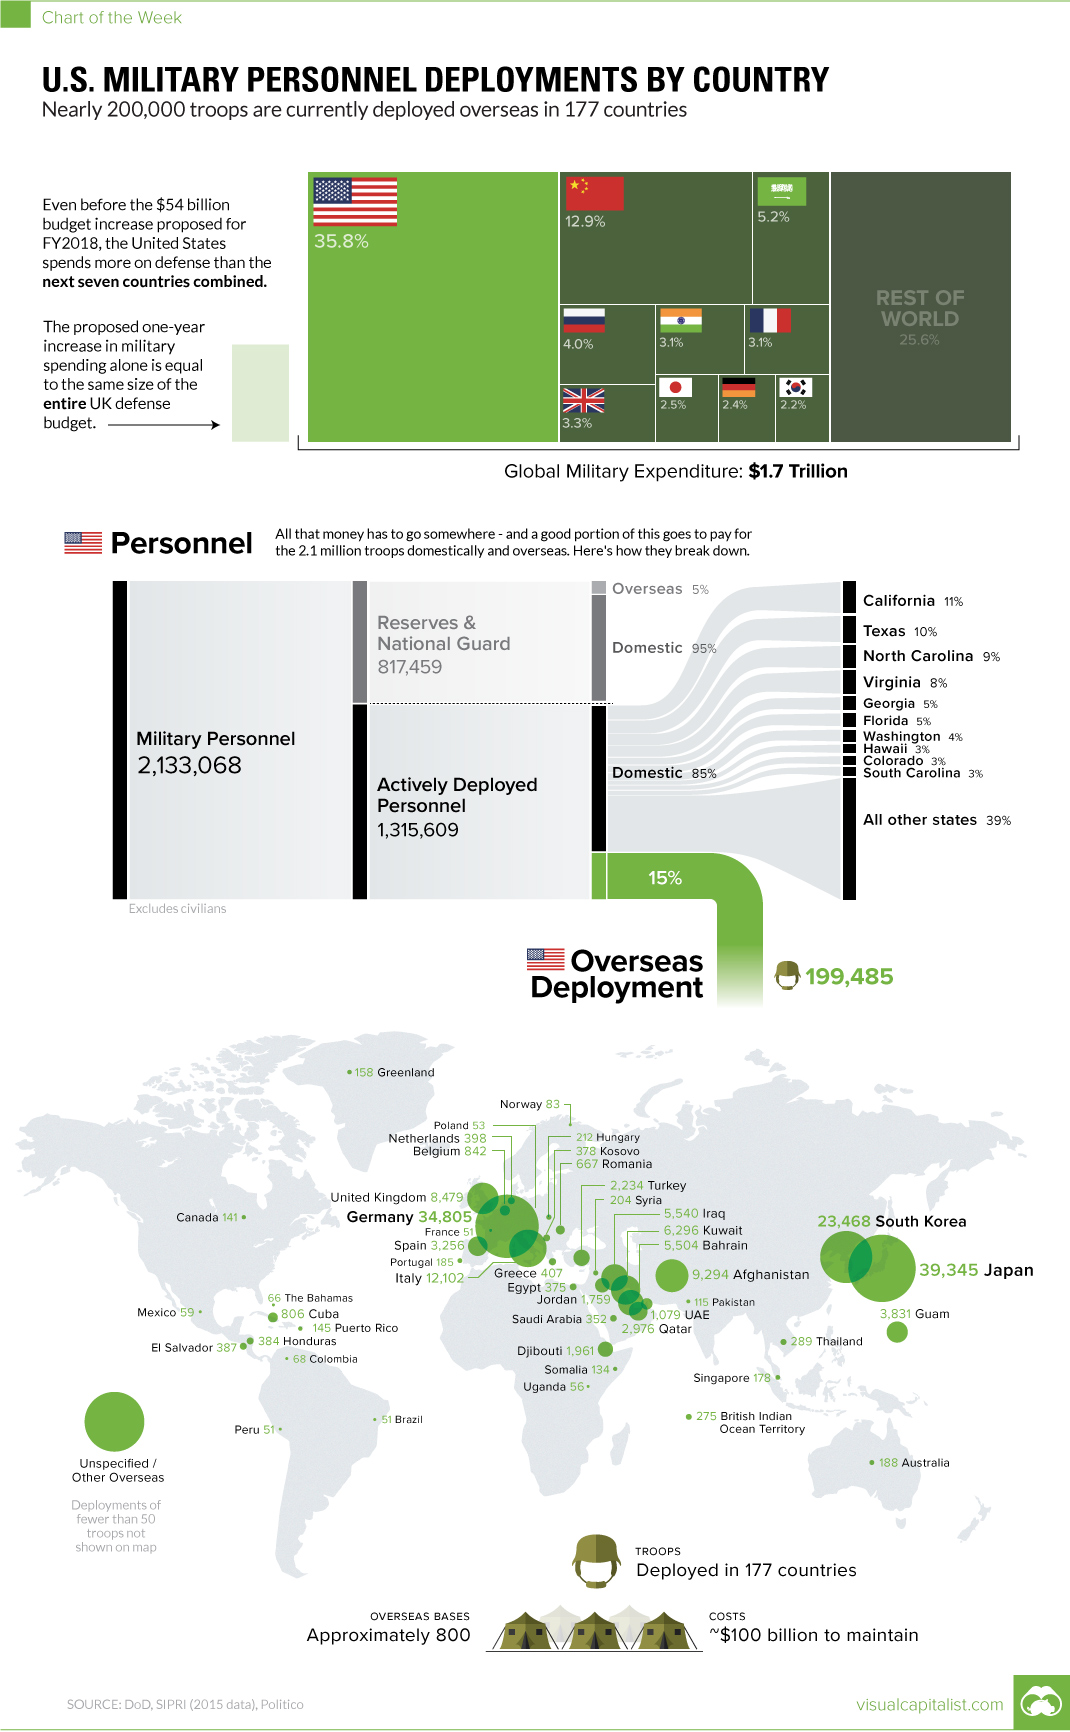 Chart: U.S. Military Personnel Deployments by Country